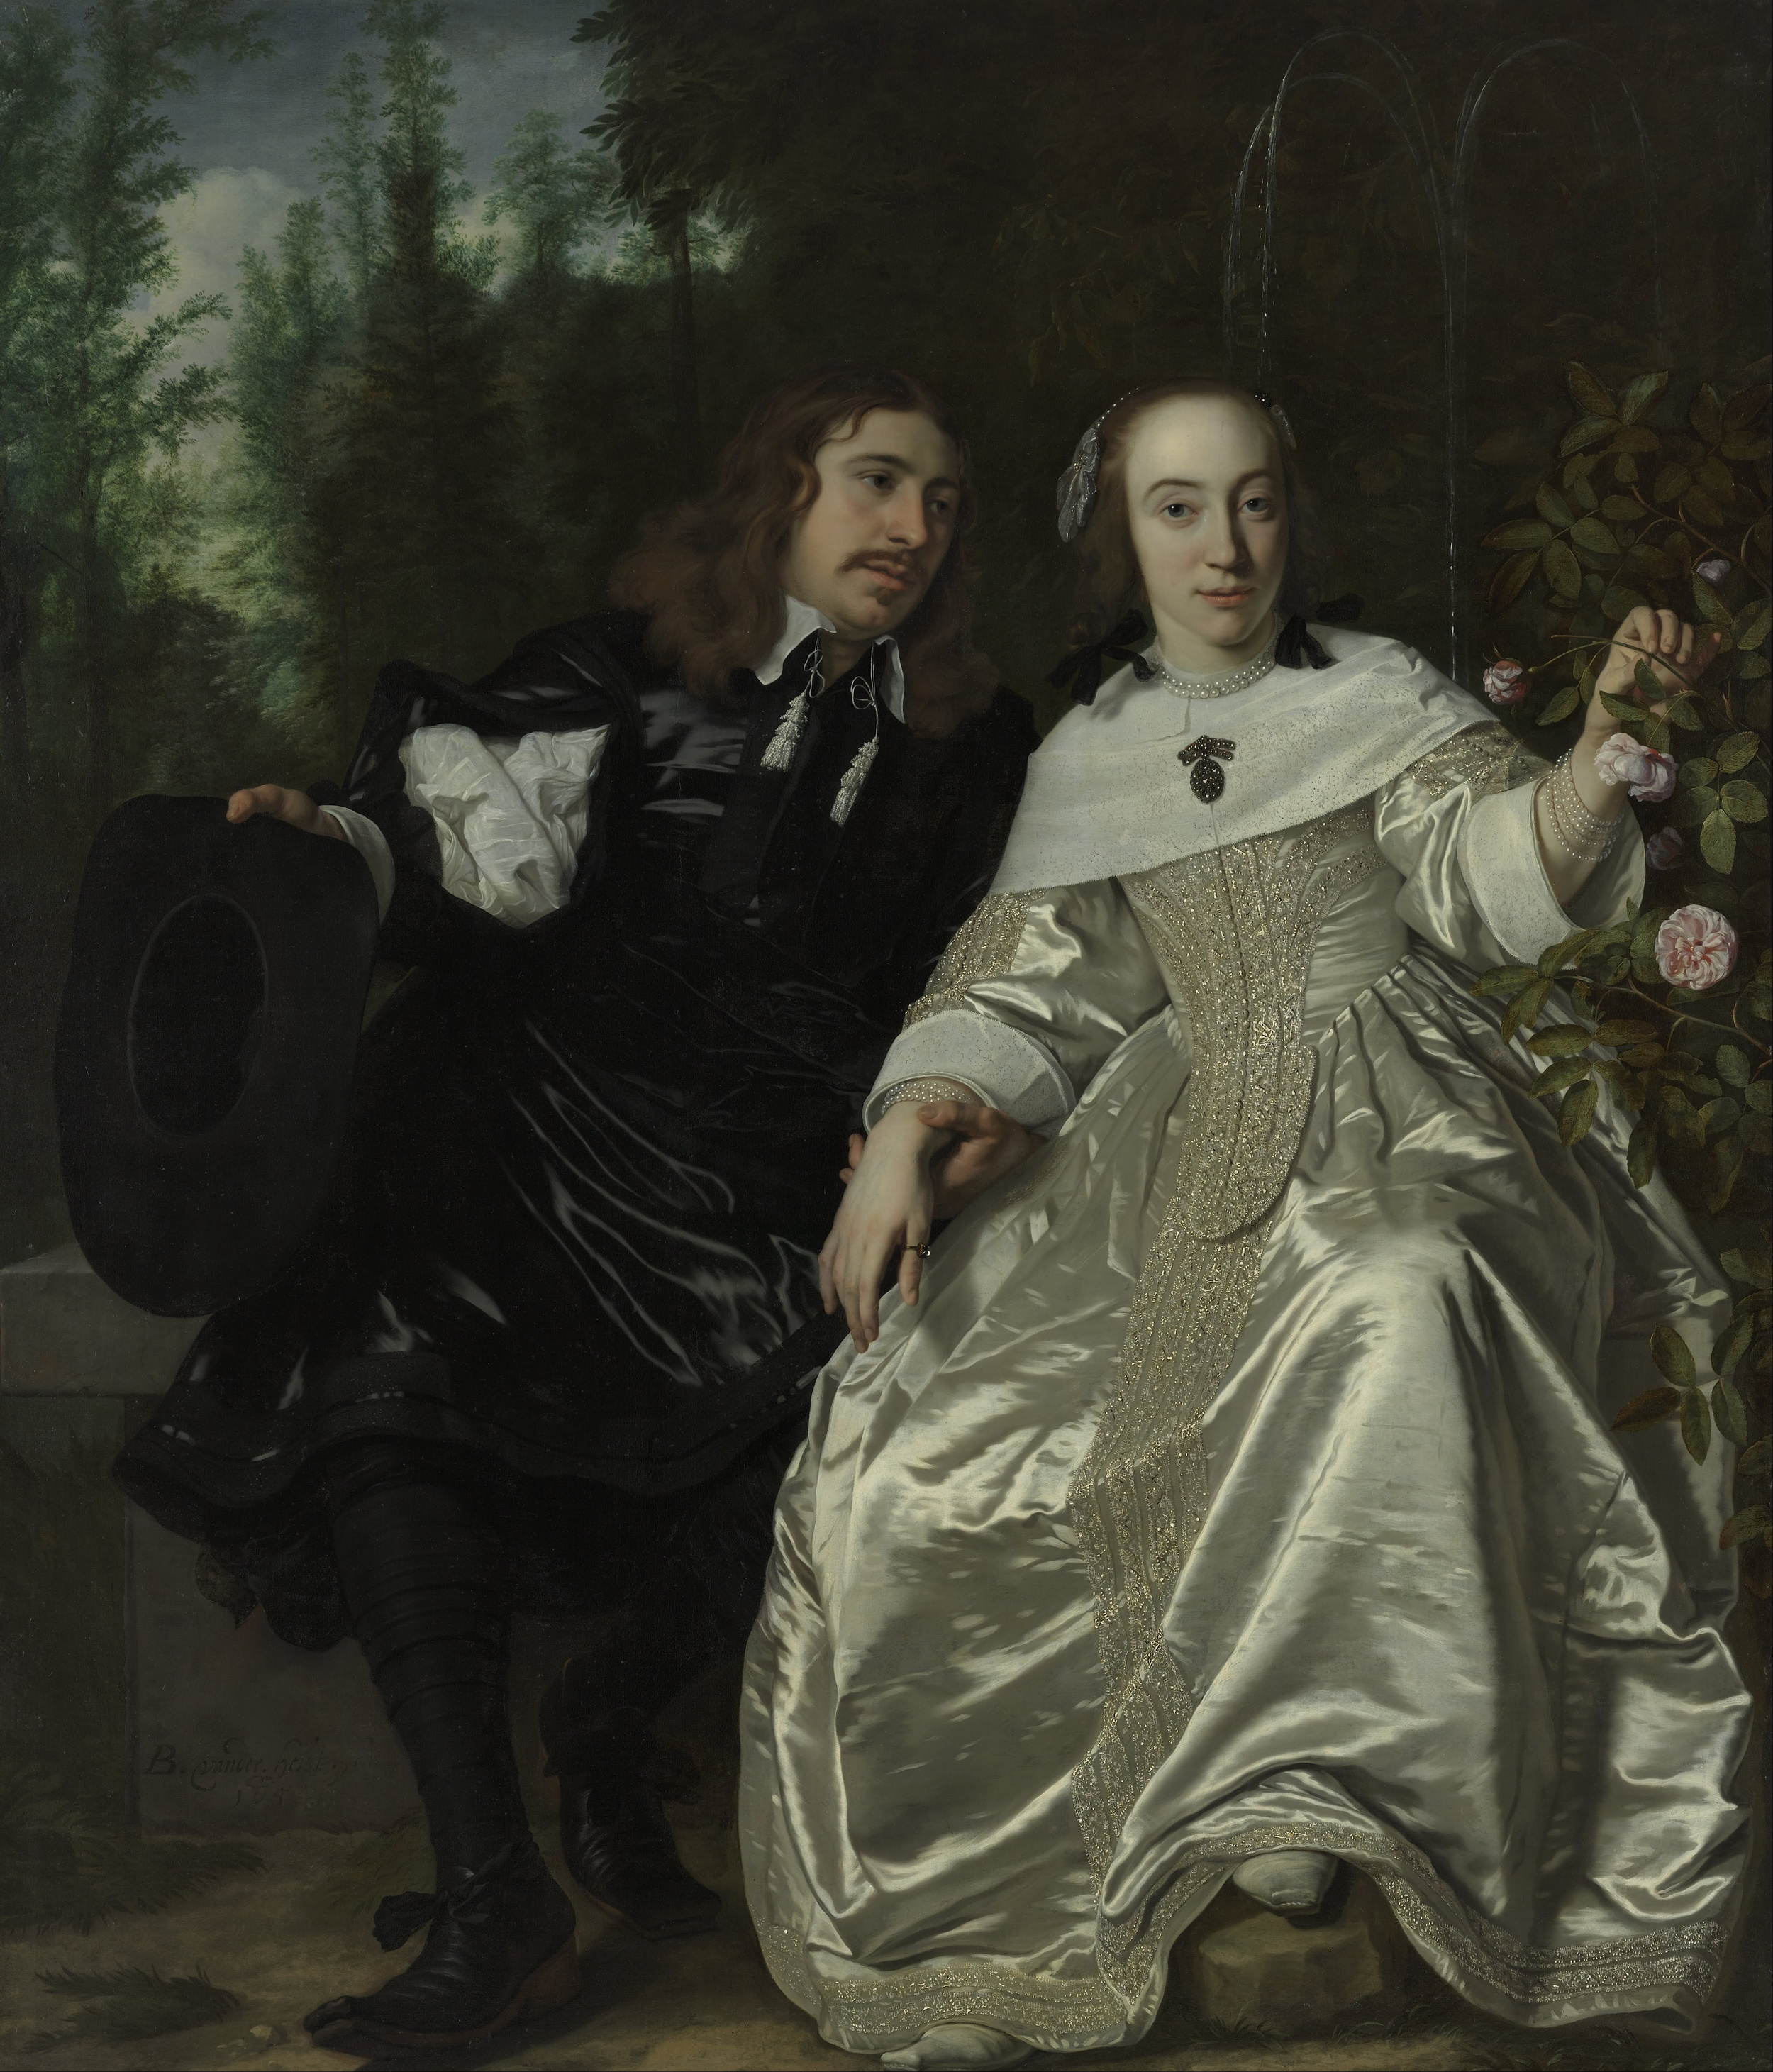 Bartholomeus_van_der_Helst_-_Abraham_del_Court_and_his_wife_Maria_de_Kaersgieter_-_Google_Art_Project.jpg